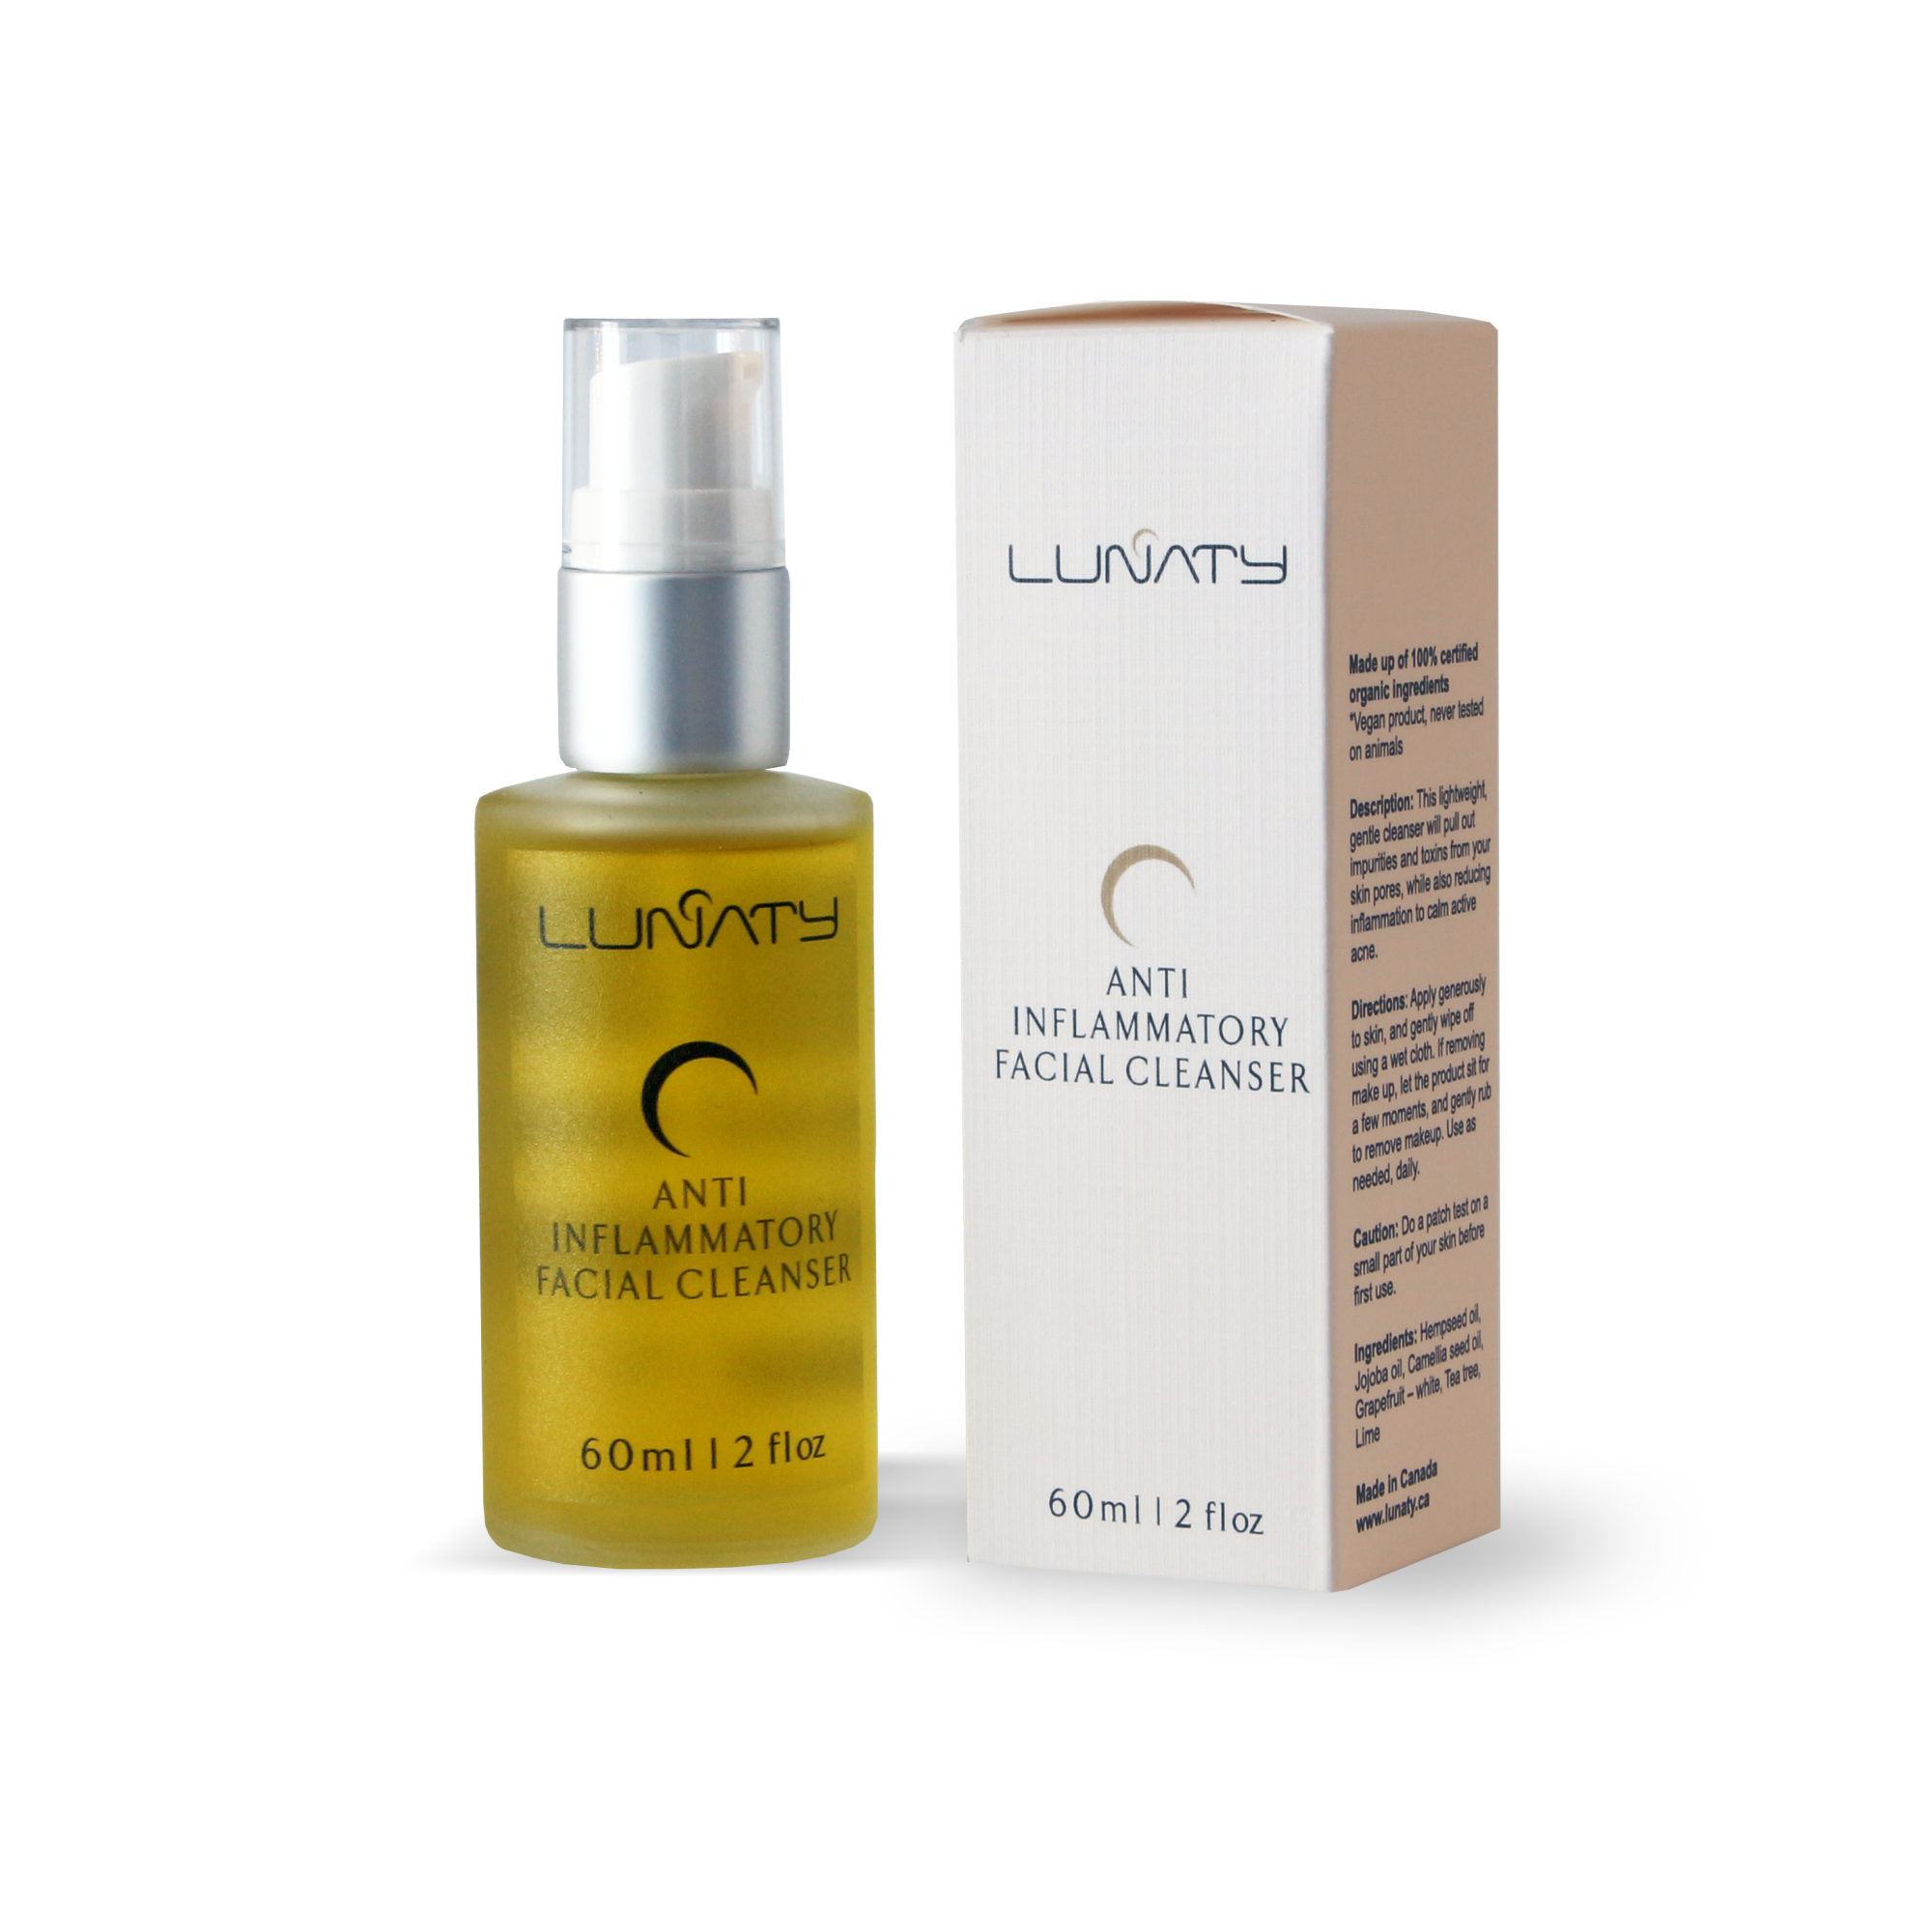 lunaty - Anti Iflam Facial Cleanser